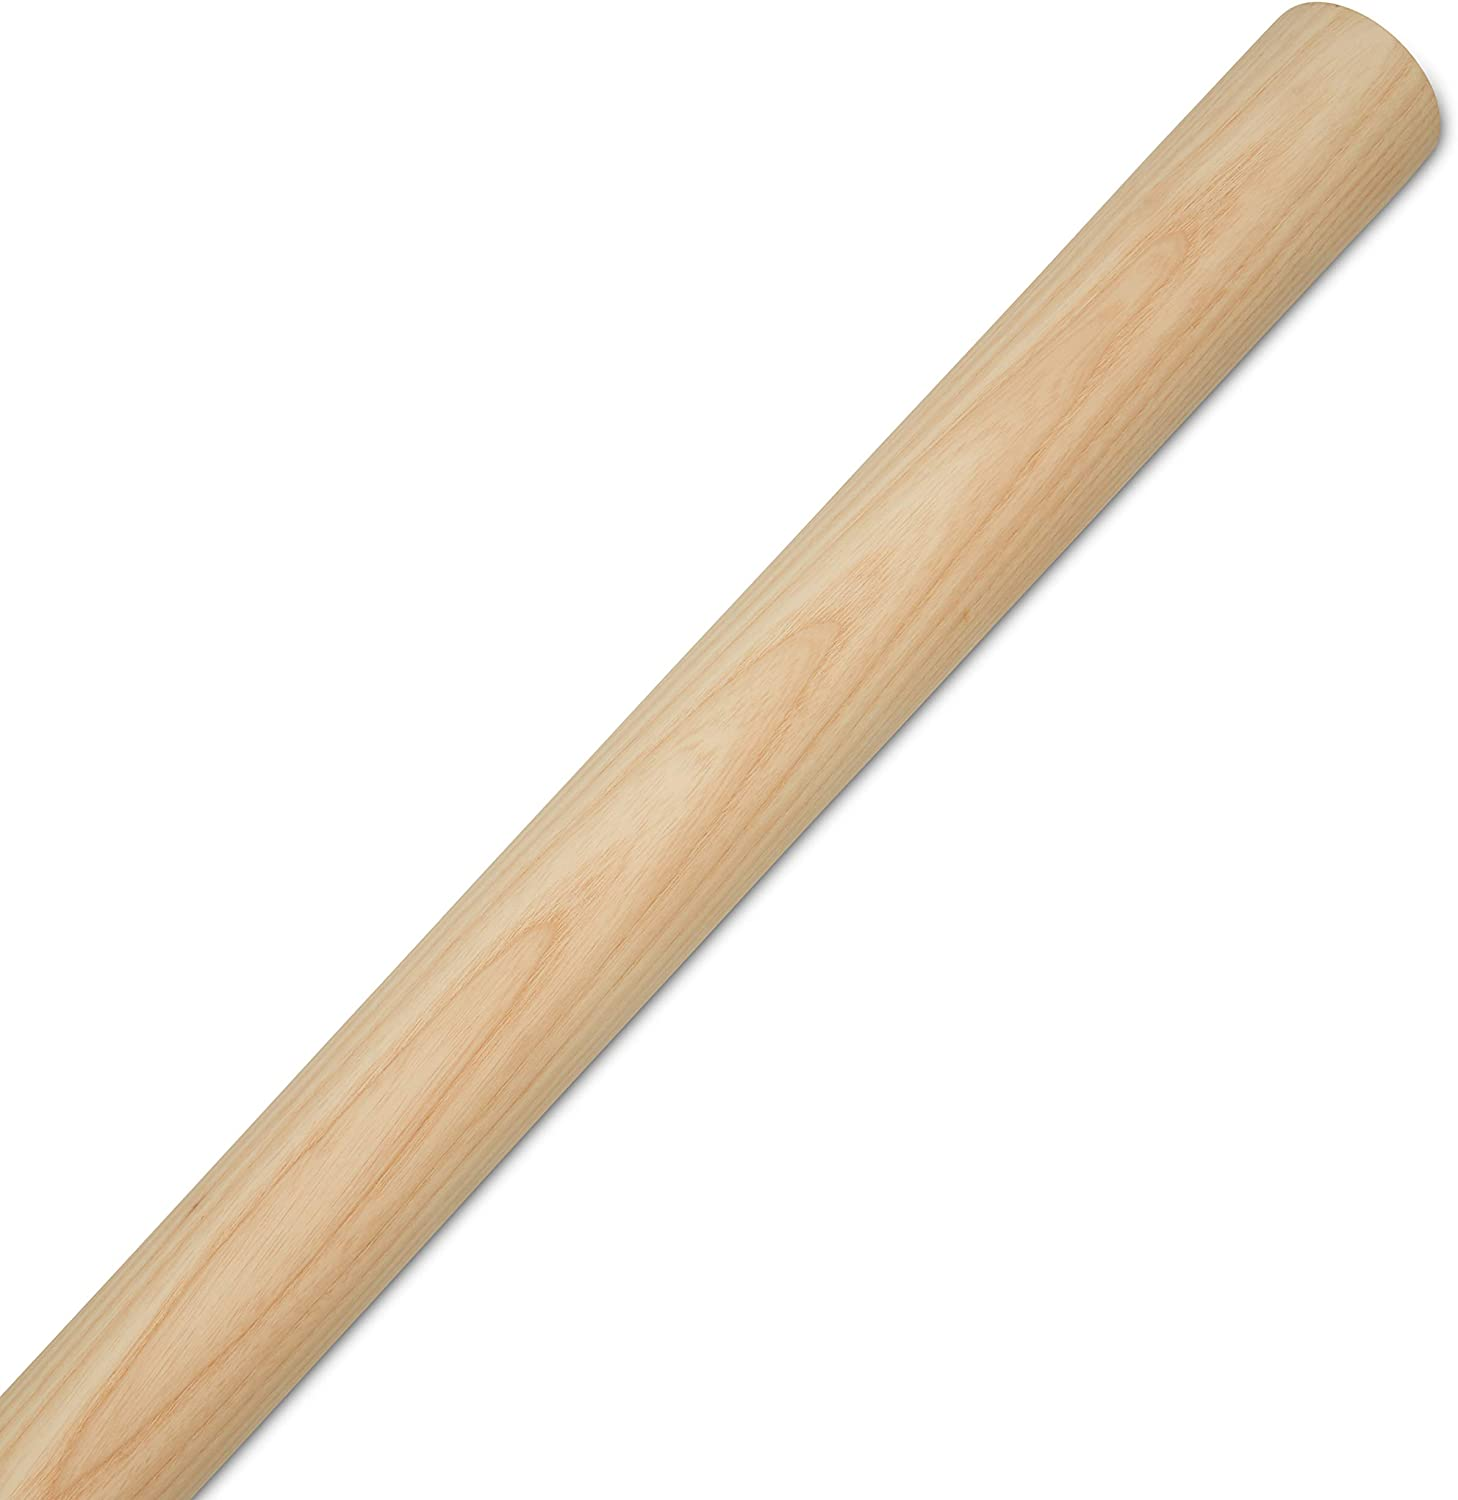 Dowel Rods Wood Sticks Wooden Dowel Rods - 2 x 36 Inch Unfinished Hardwood Sticks - for Crafts and DIYers - 1 Pieces by Woodpeckers